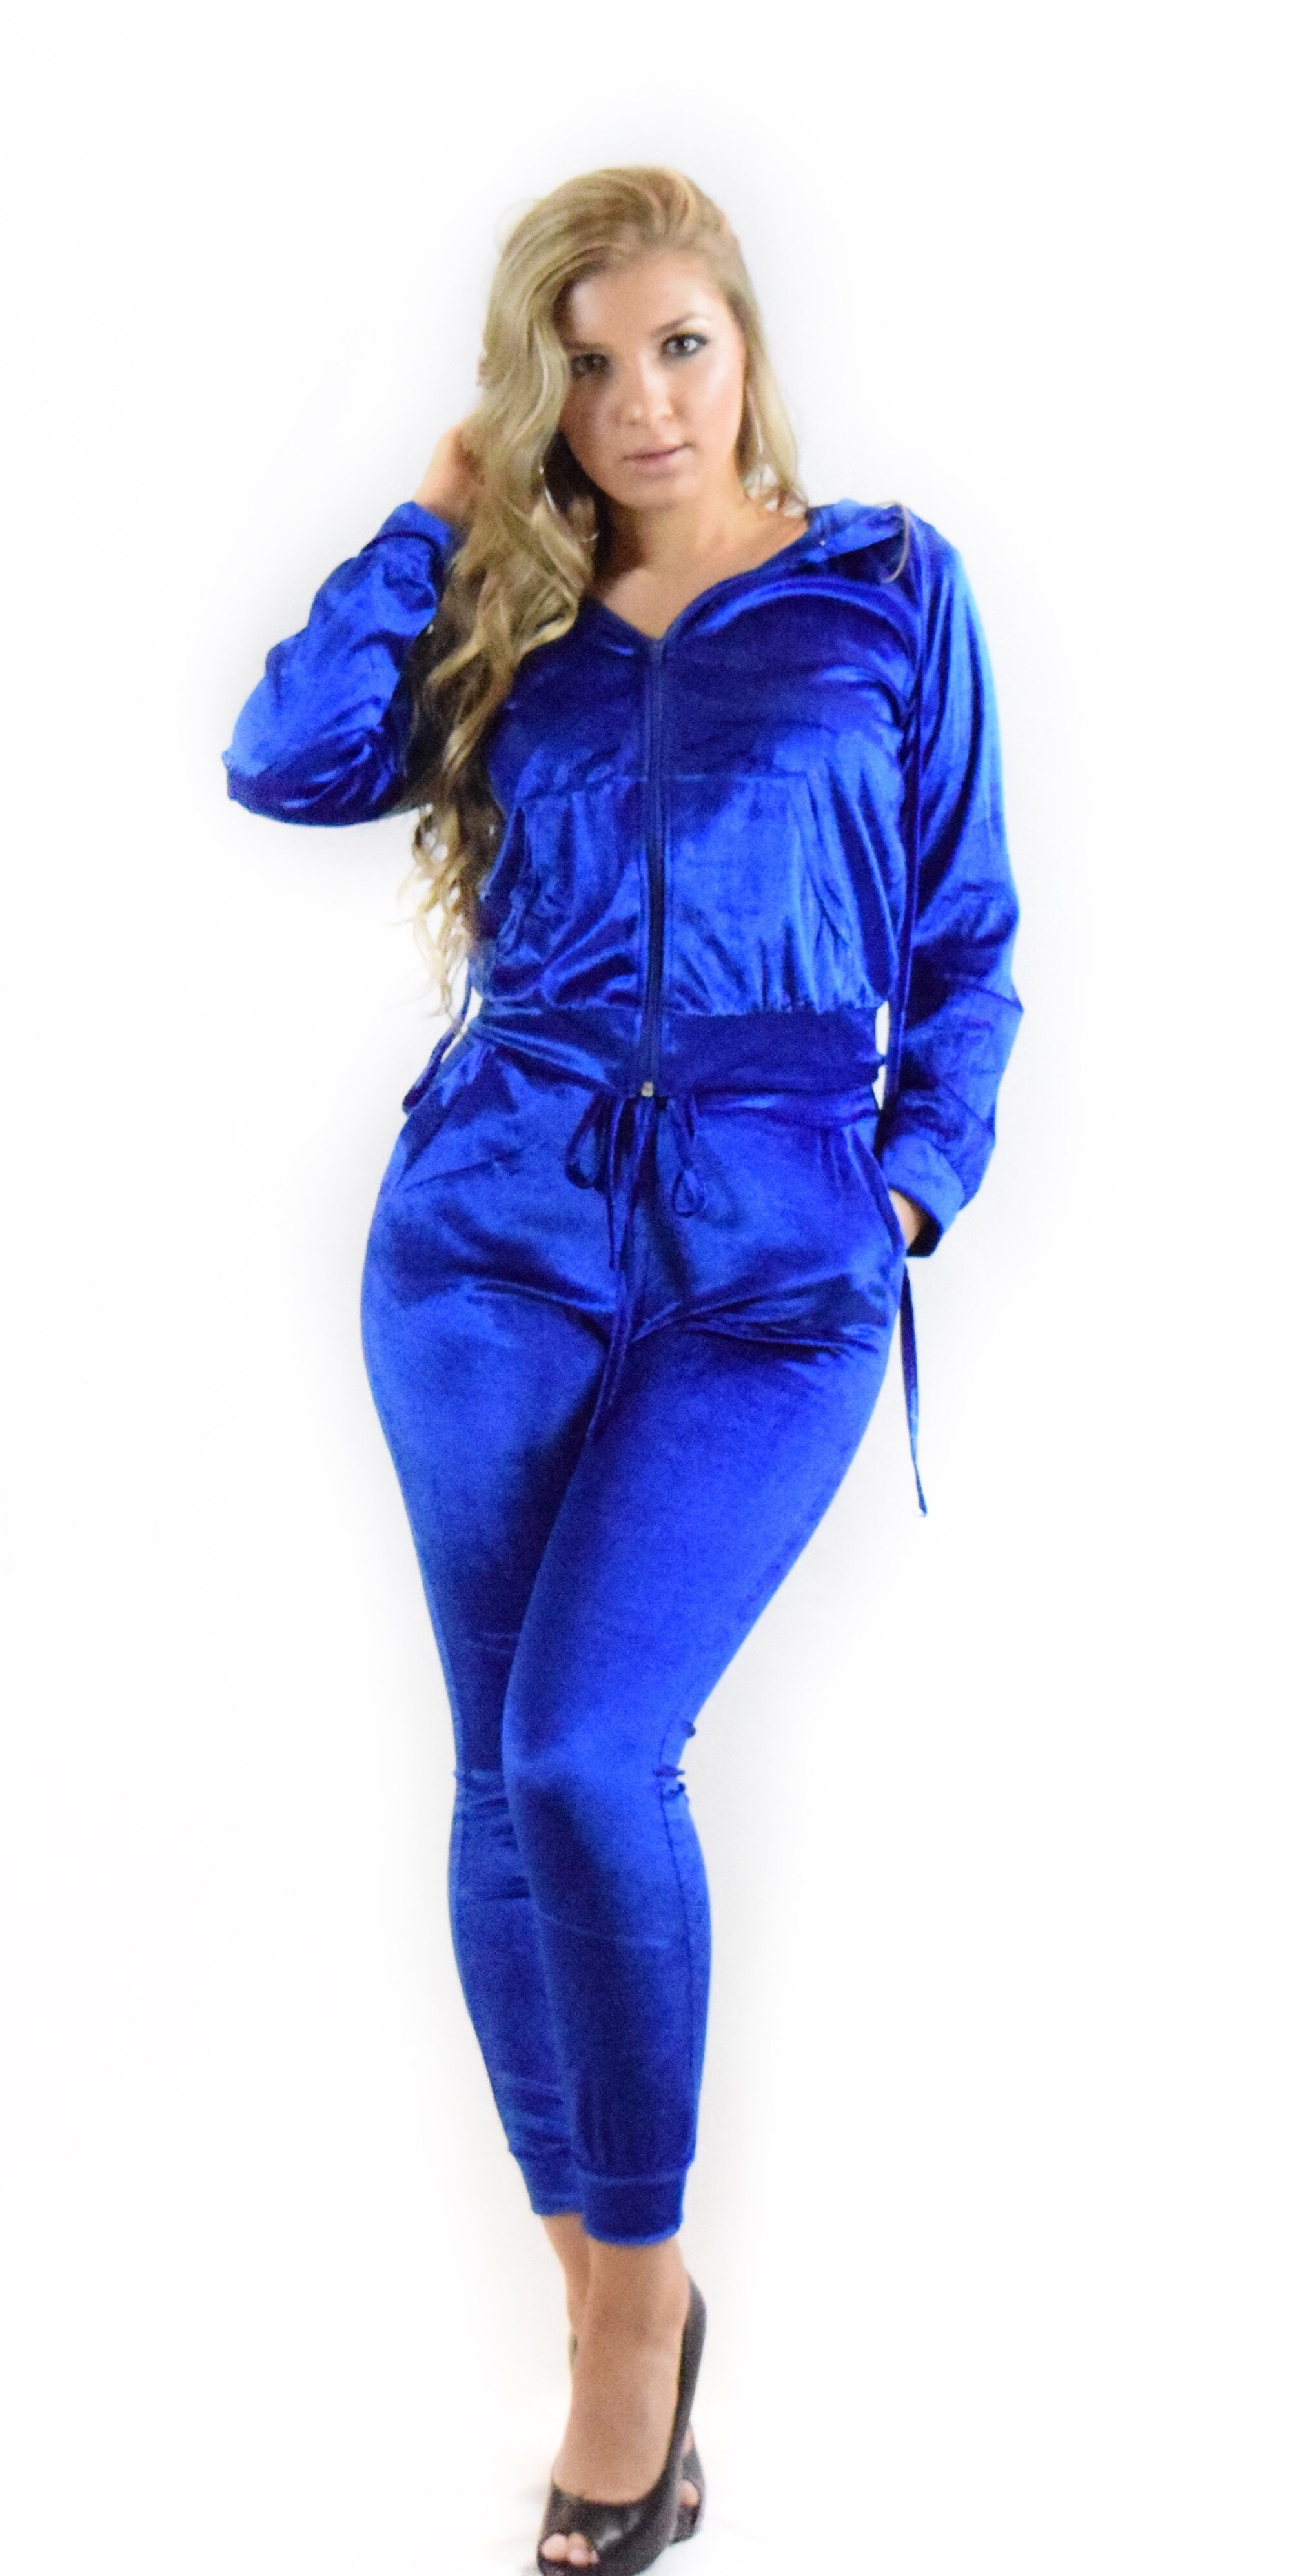 blue hooded jacket hoodie velvet sport matching set matching jogger pants two piece set  style trend trending woman girl teen clothing fashion